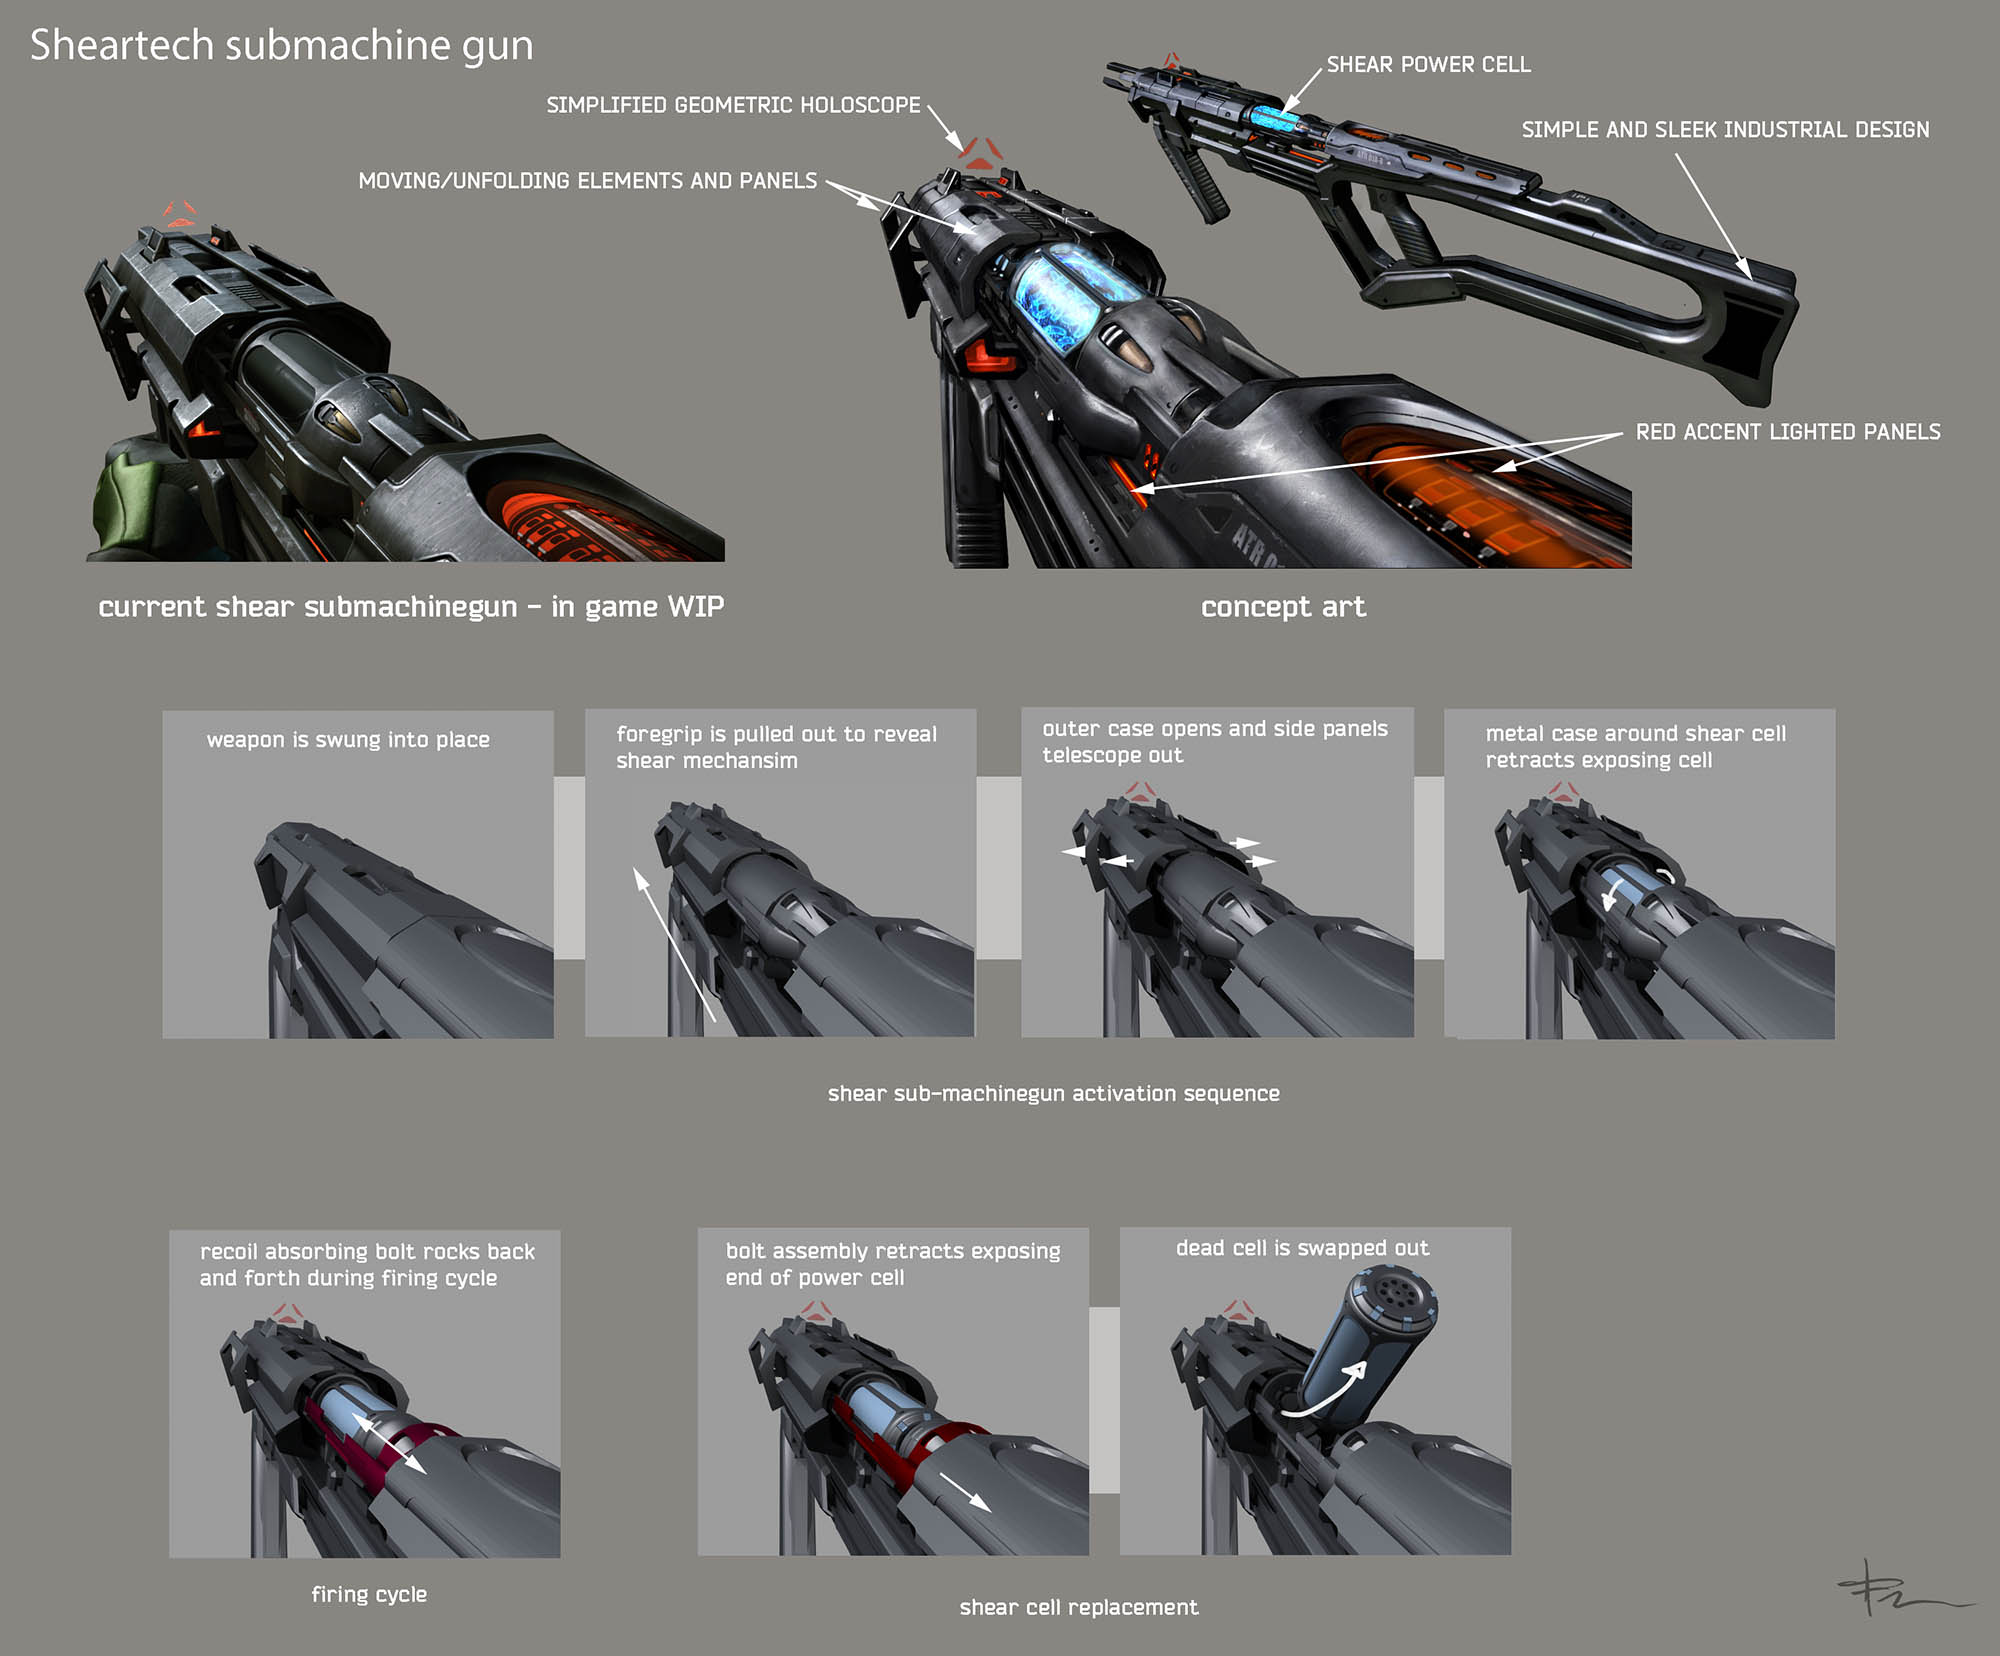 TJFRame-Art_Evolve_ShearSubmachineGun.jpg